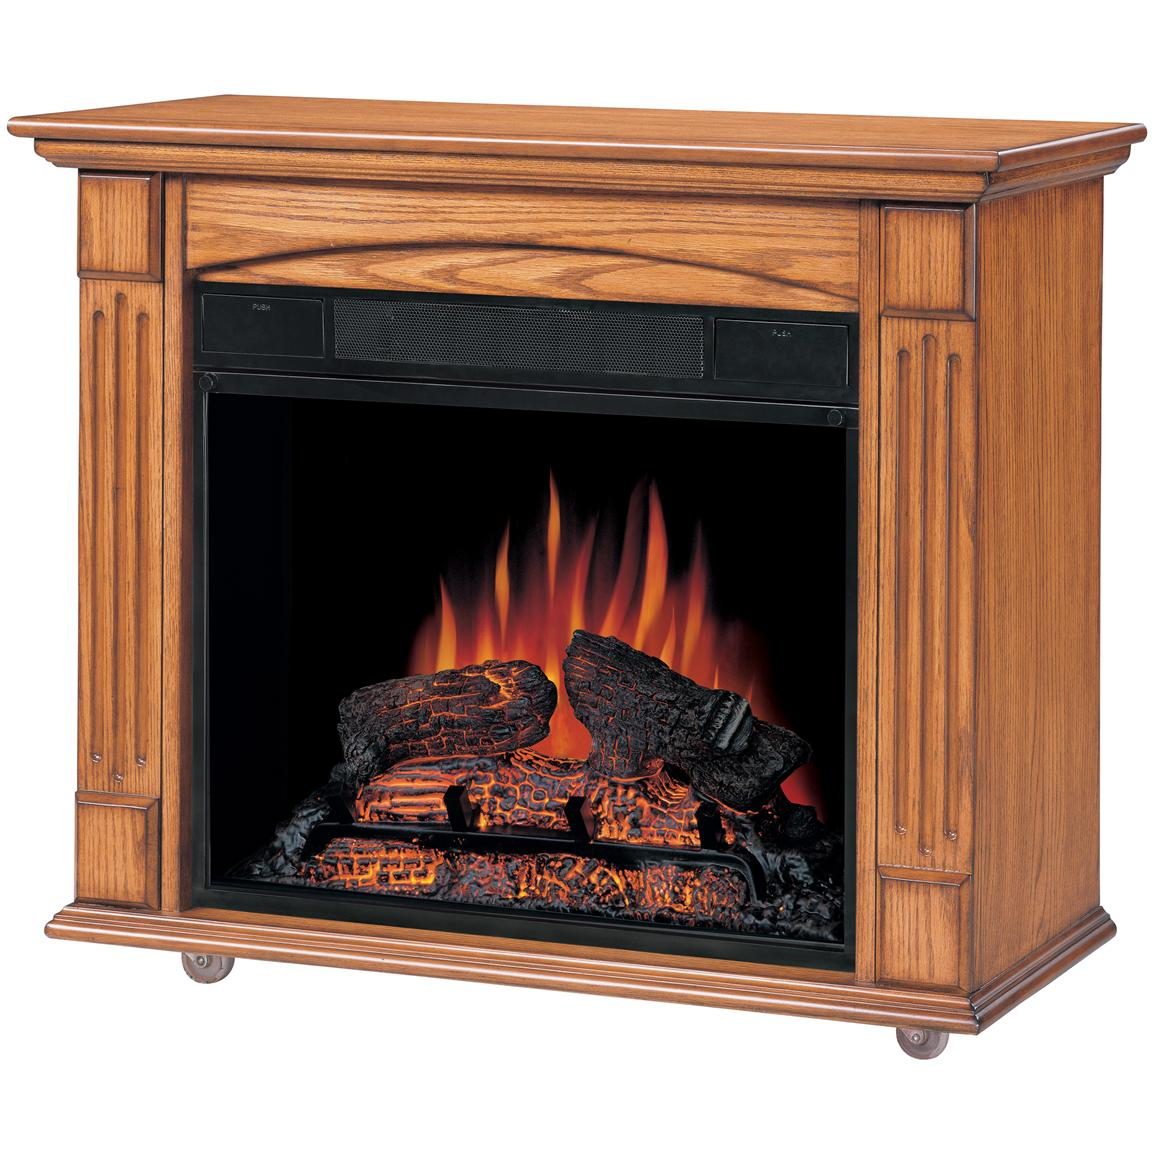 Classic Flame Lancaster Electric Fireplace 167653 Fireplaces At Sportsman 39 S Guide